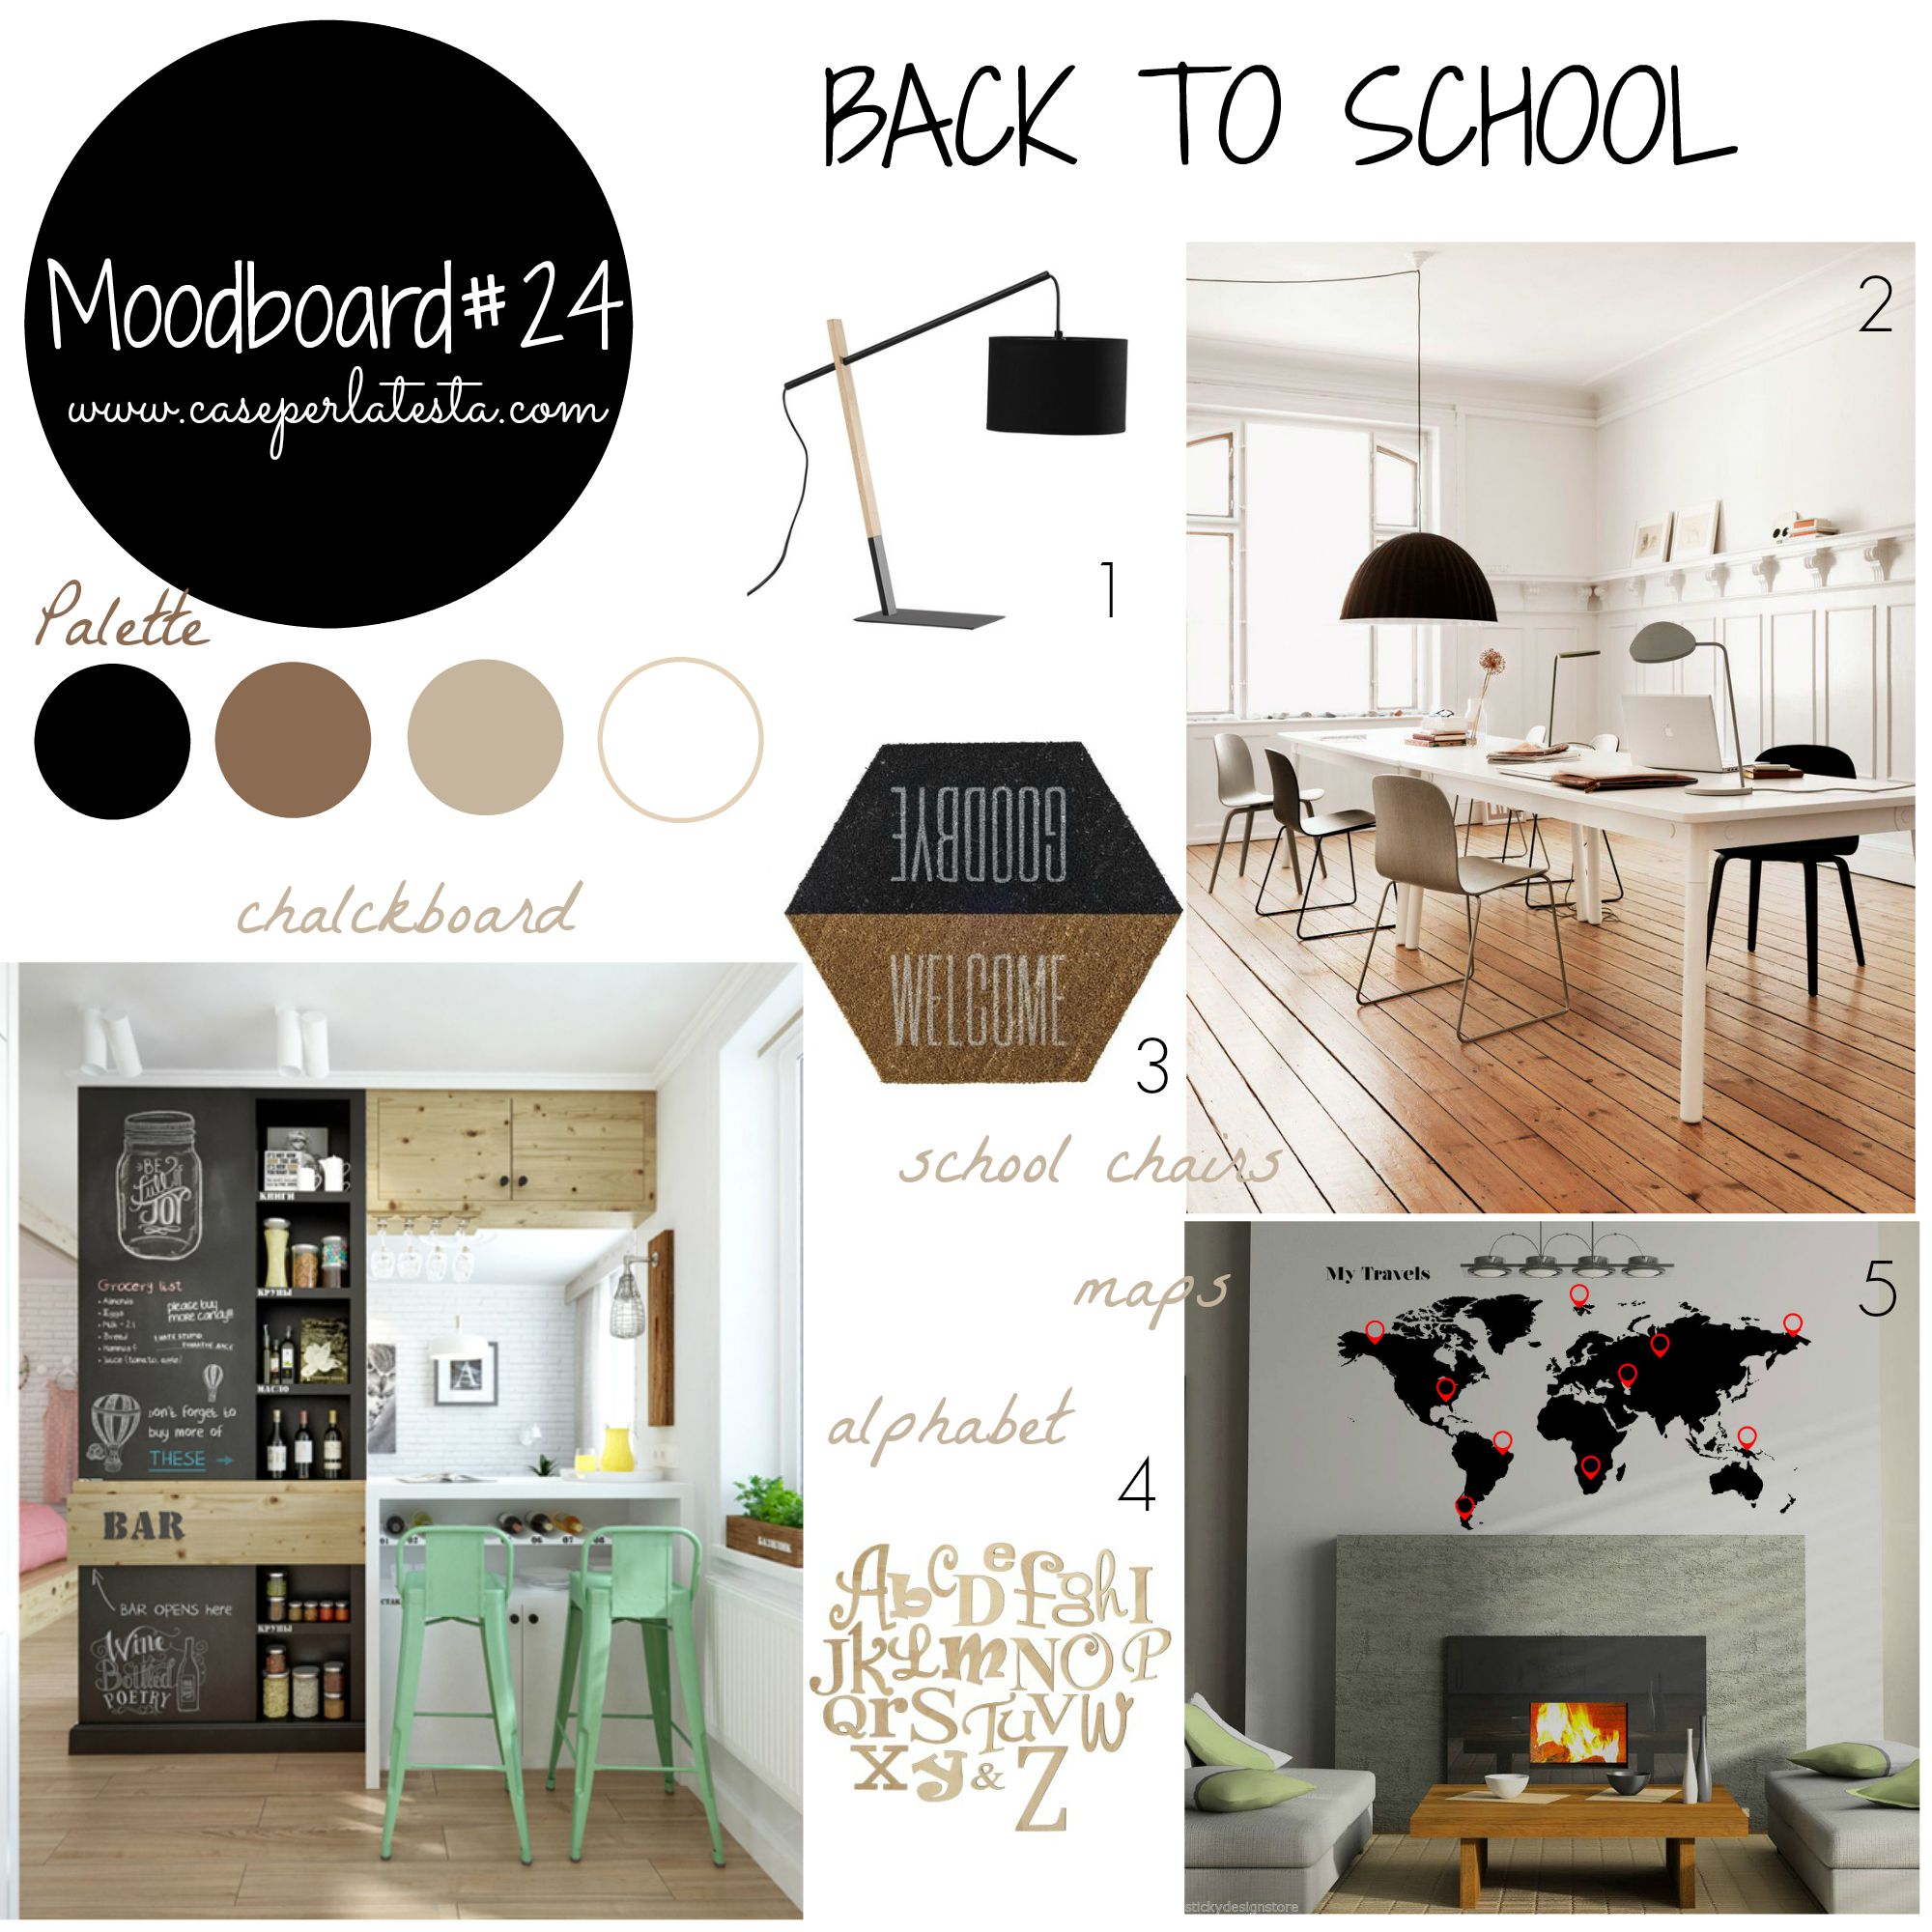 Moodboard#24-Back to school